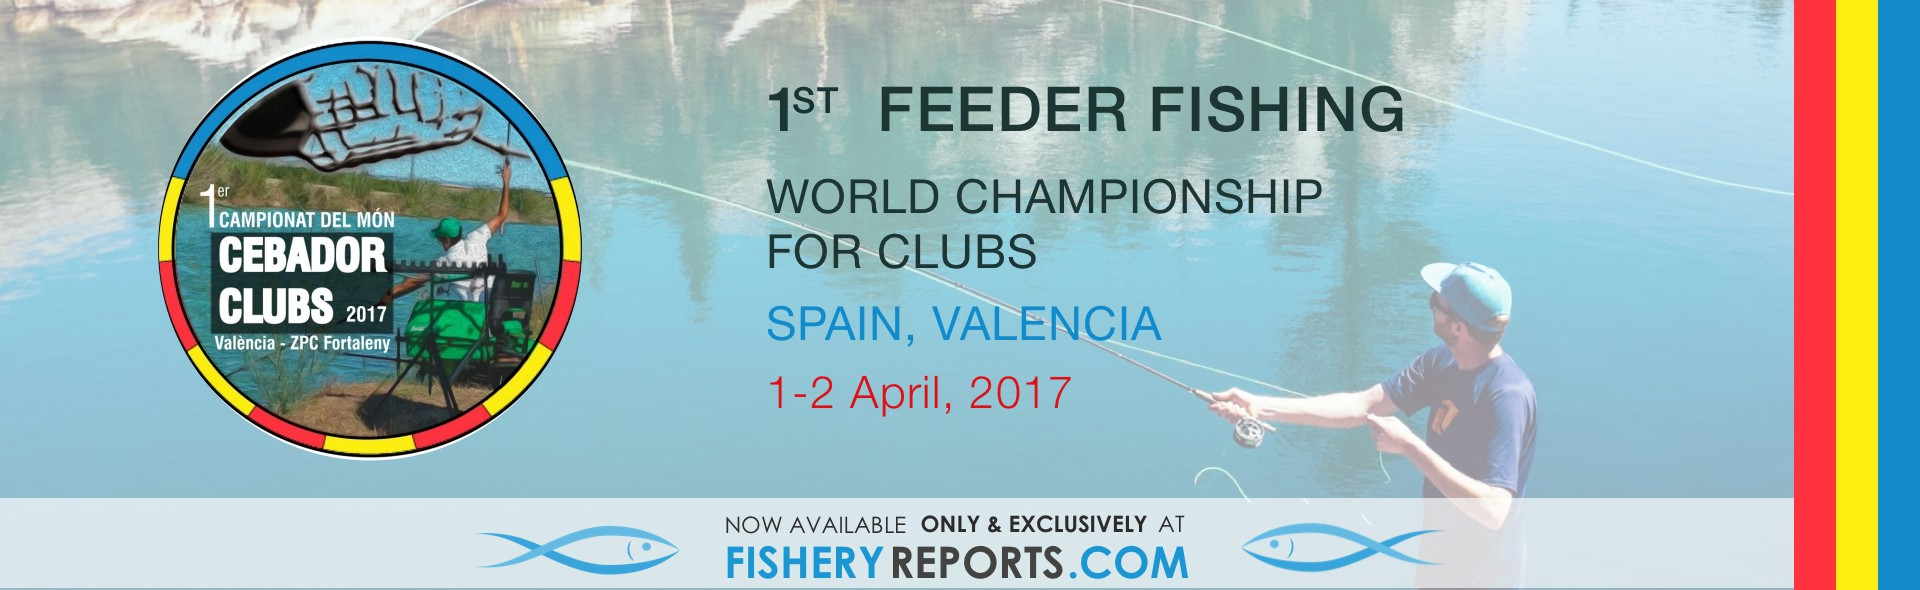 1st Feeder Fishing World Championship for Clubs